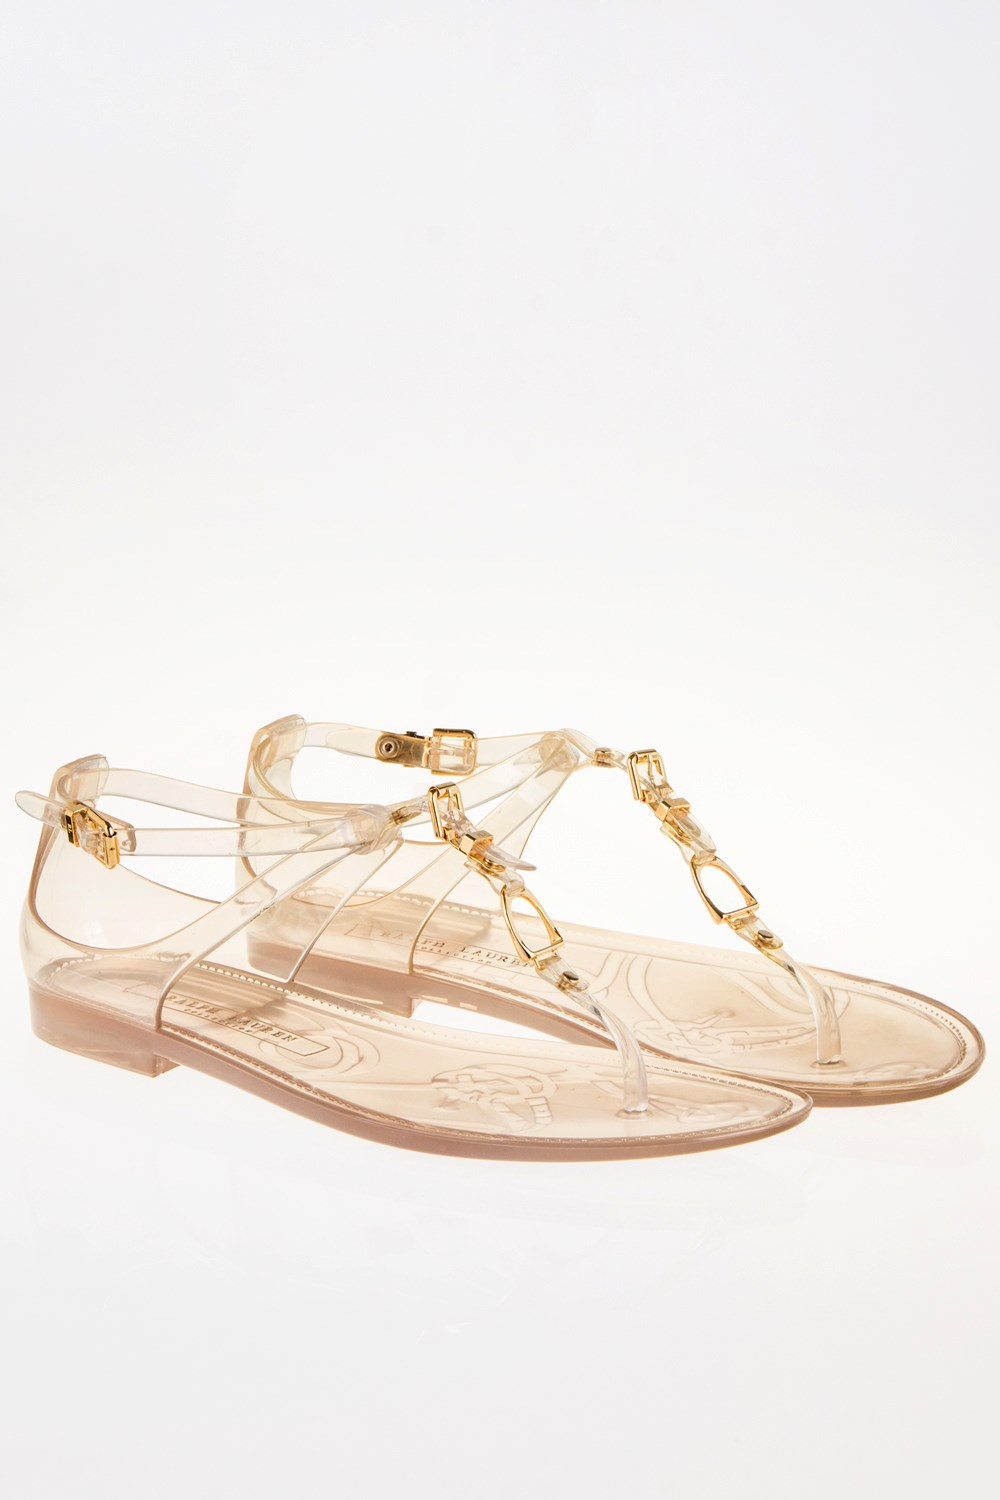 19530fad7fd Karly Clear Jelly Sandals   Size  10B(40) - Fit  True to size ...